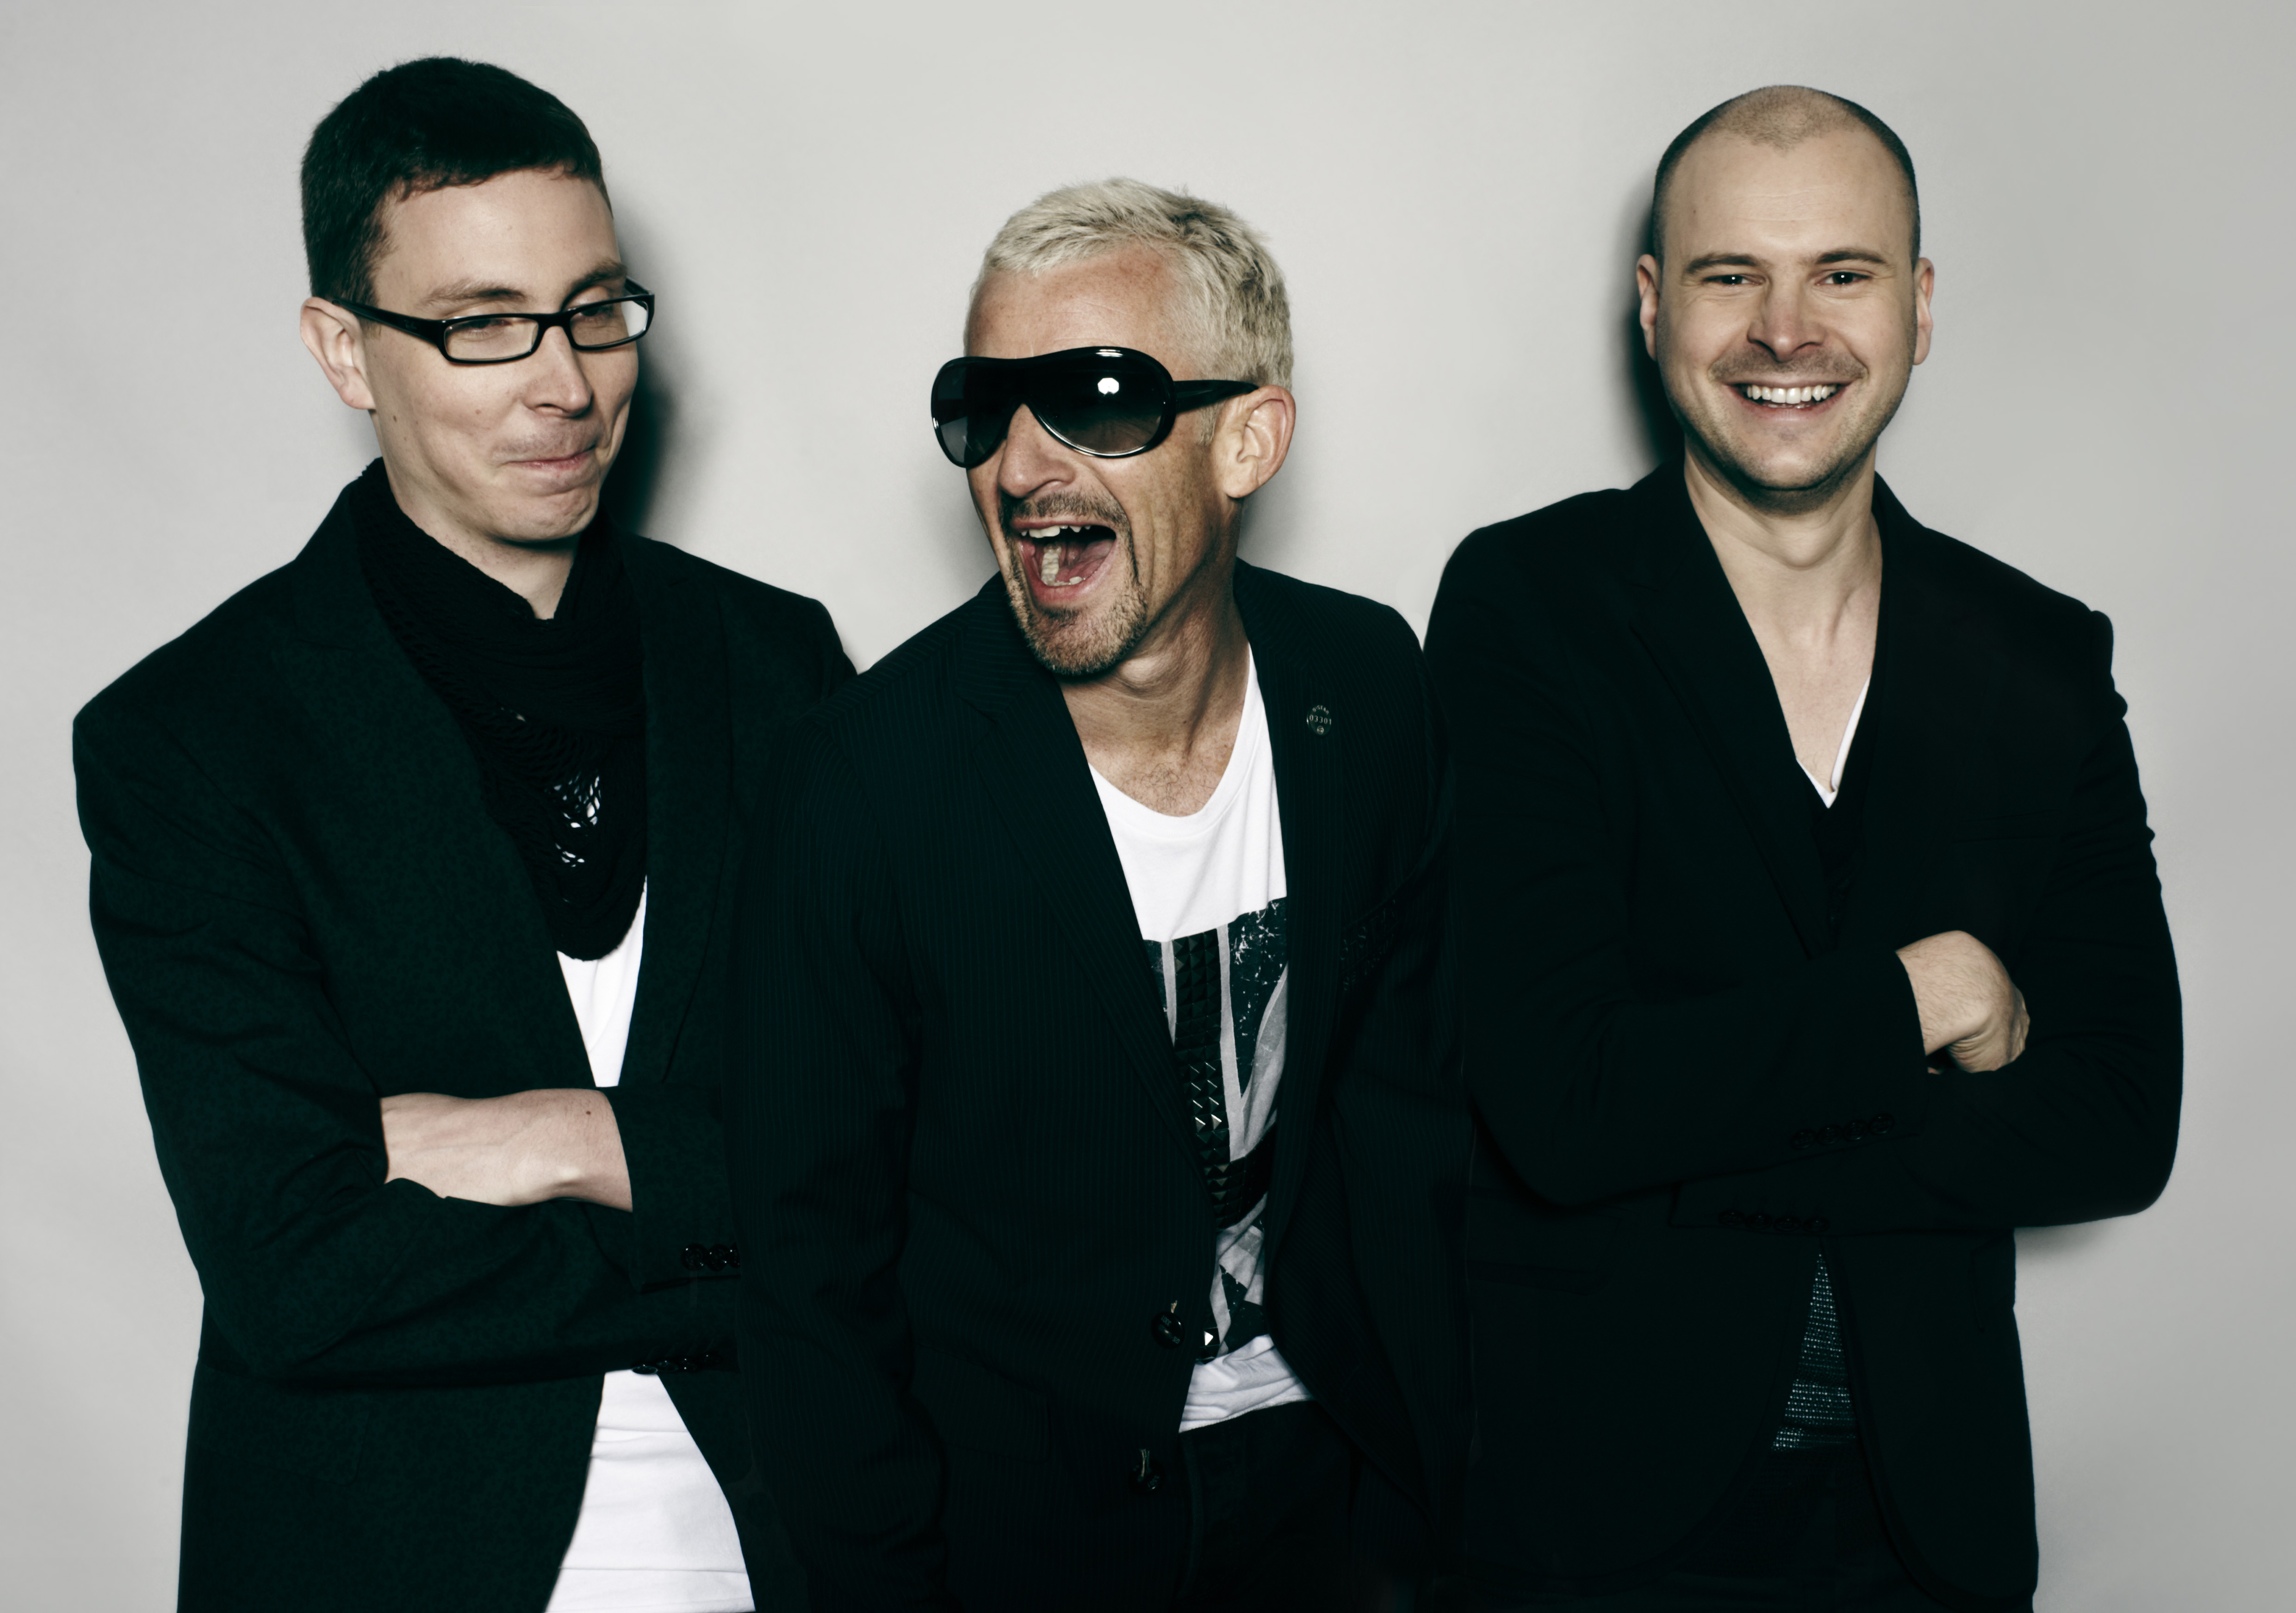 Above & Beyond's New Studio Album Common Ground Out Now on Anjunabeats